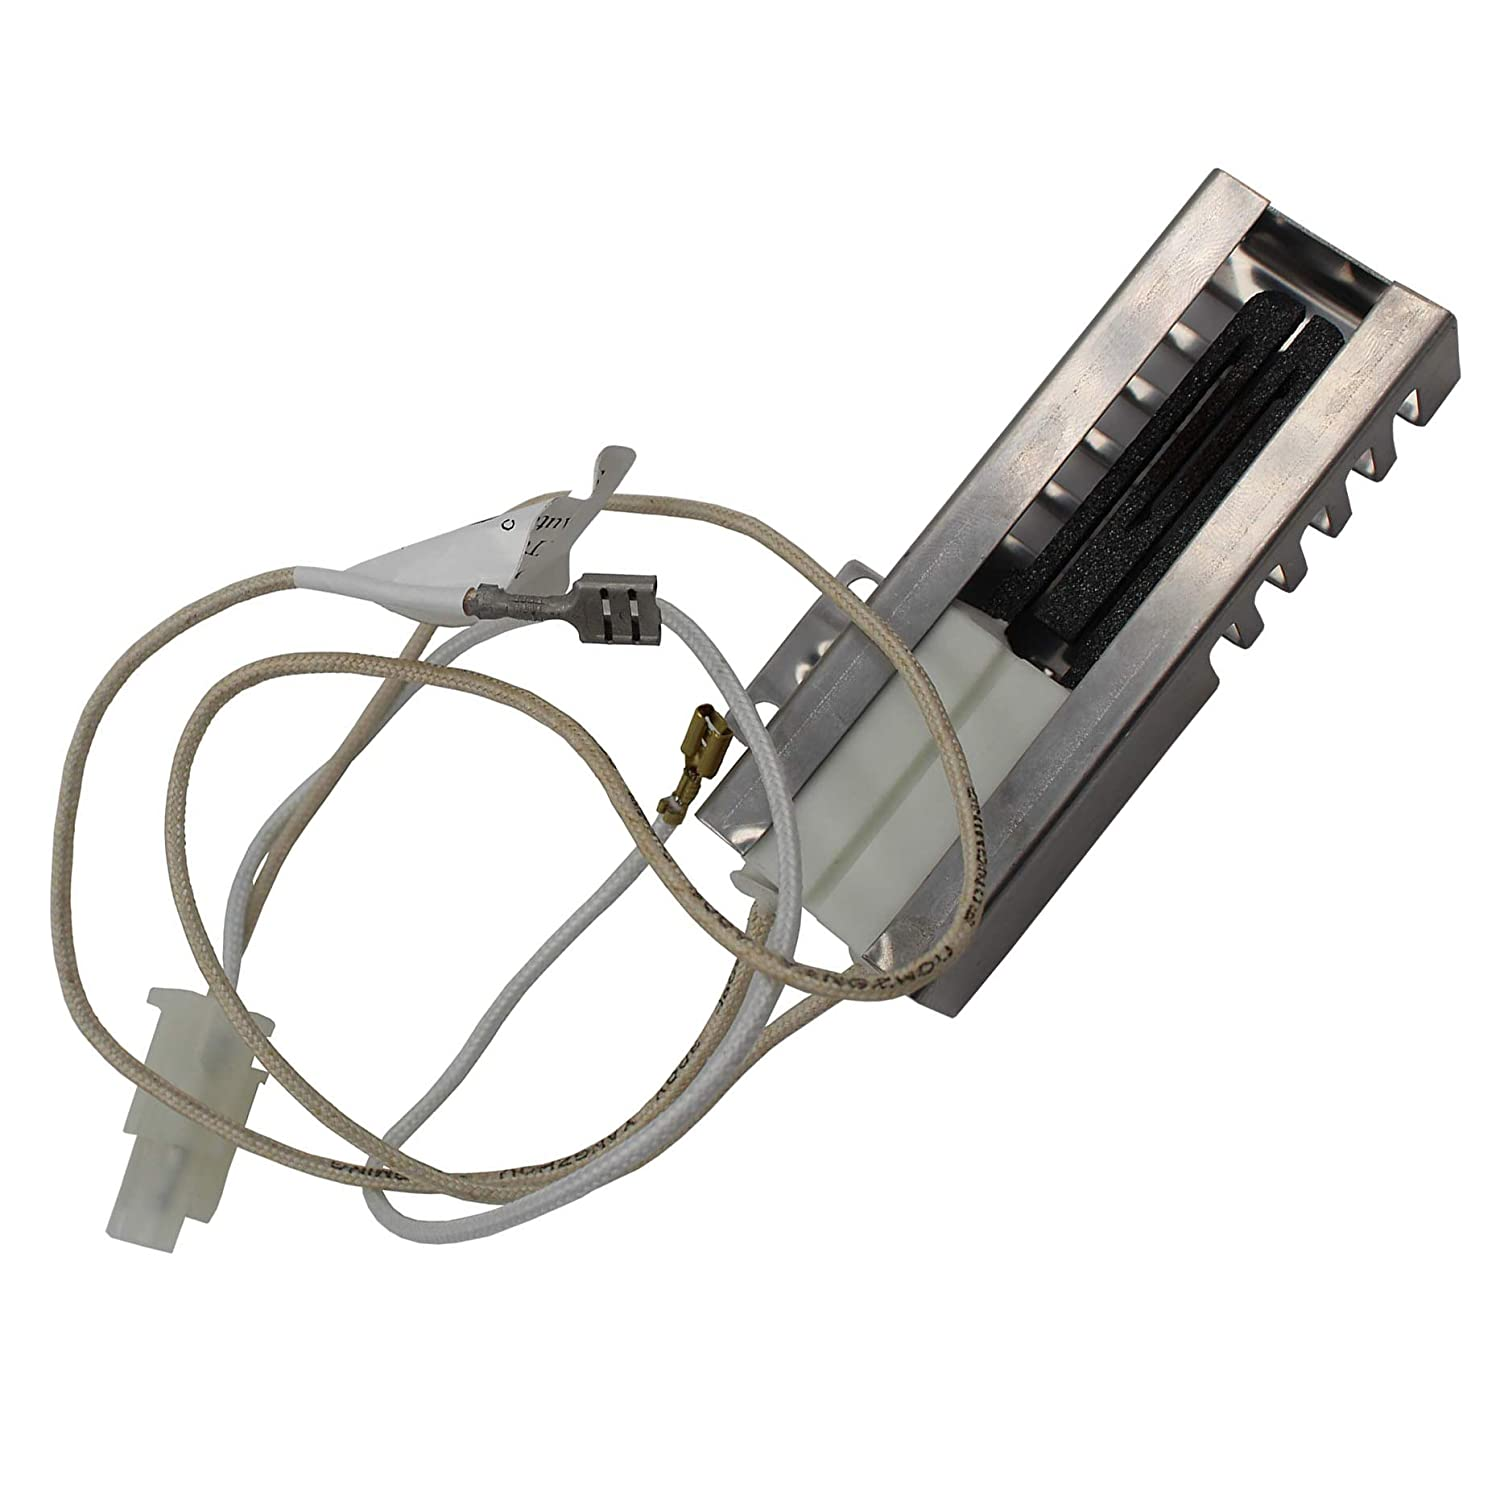 Supplying Demand 316489402 316489408 Oven Range Igniter Assembly Flat Igniter Direct Fit Connections